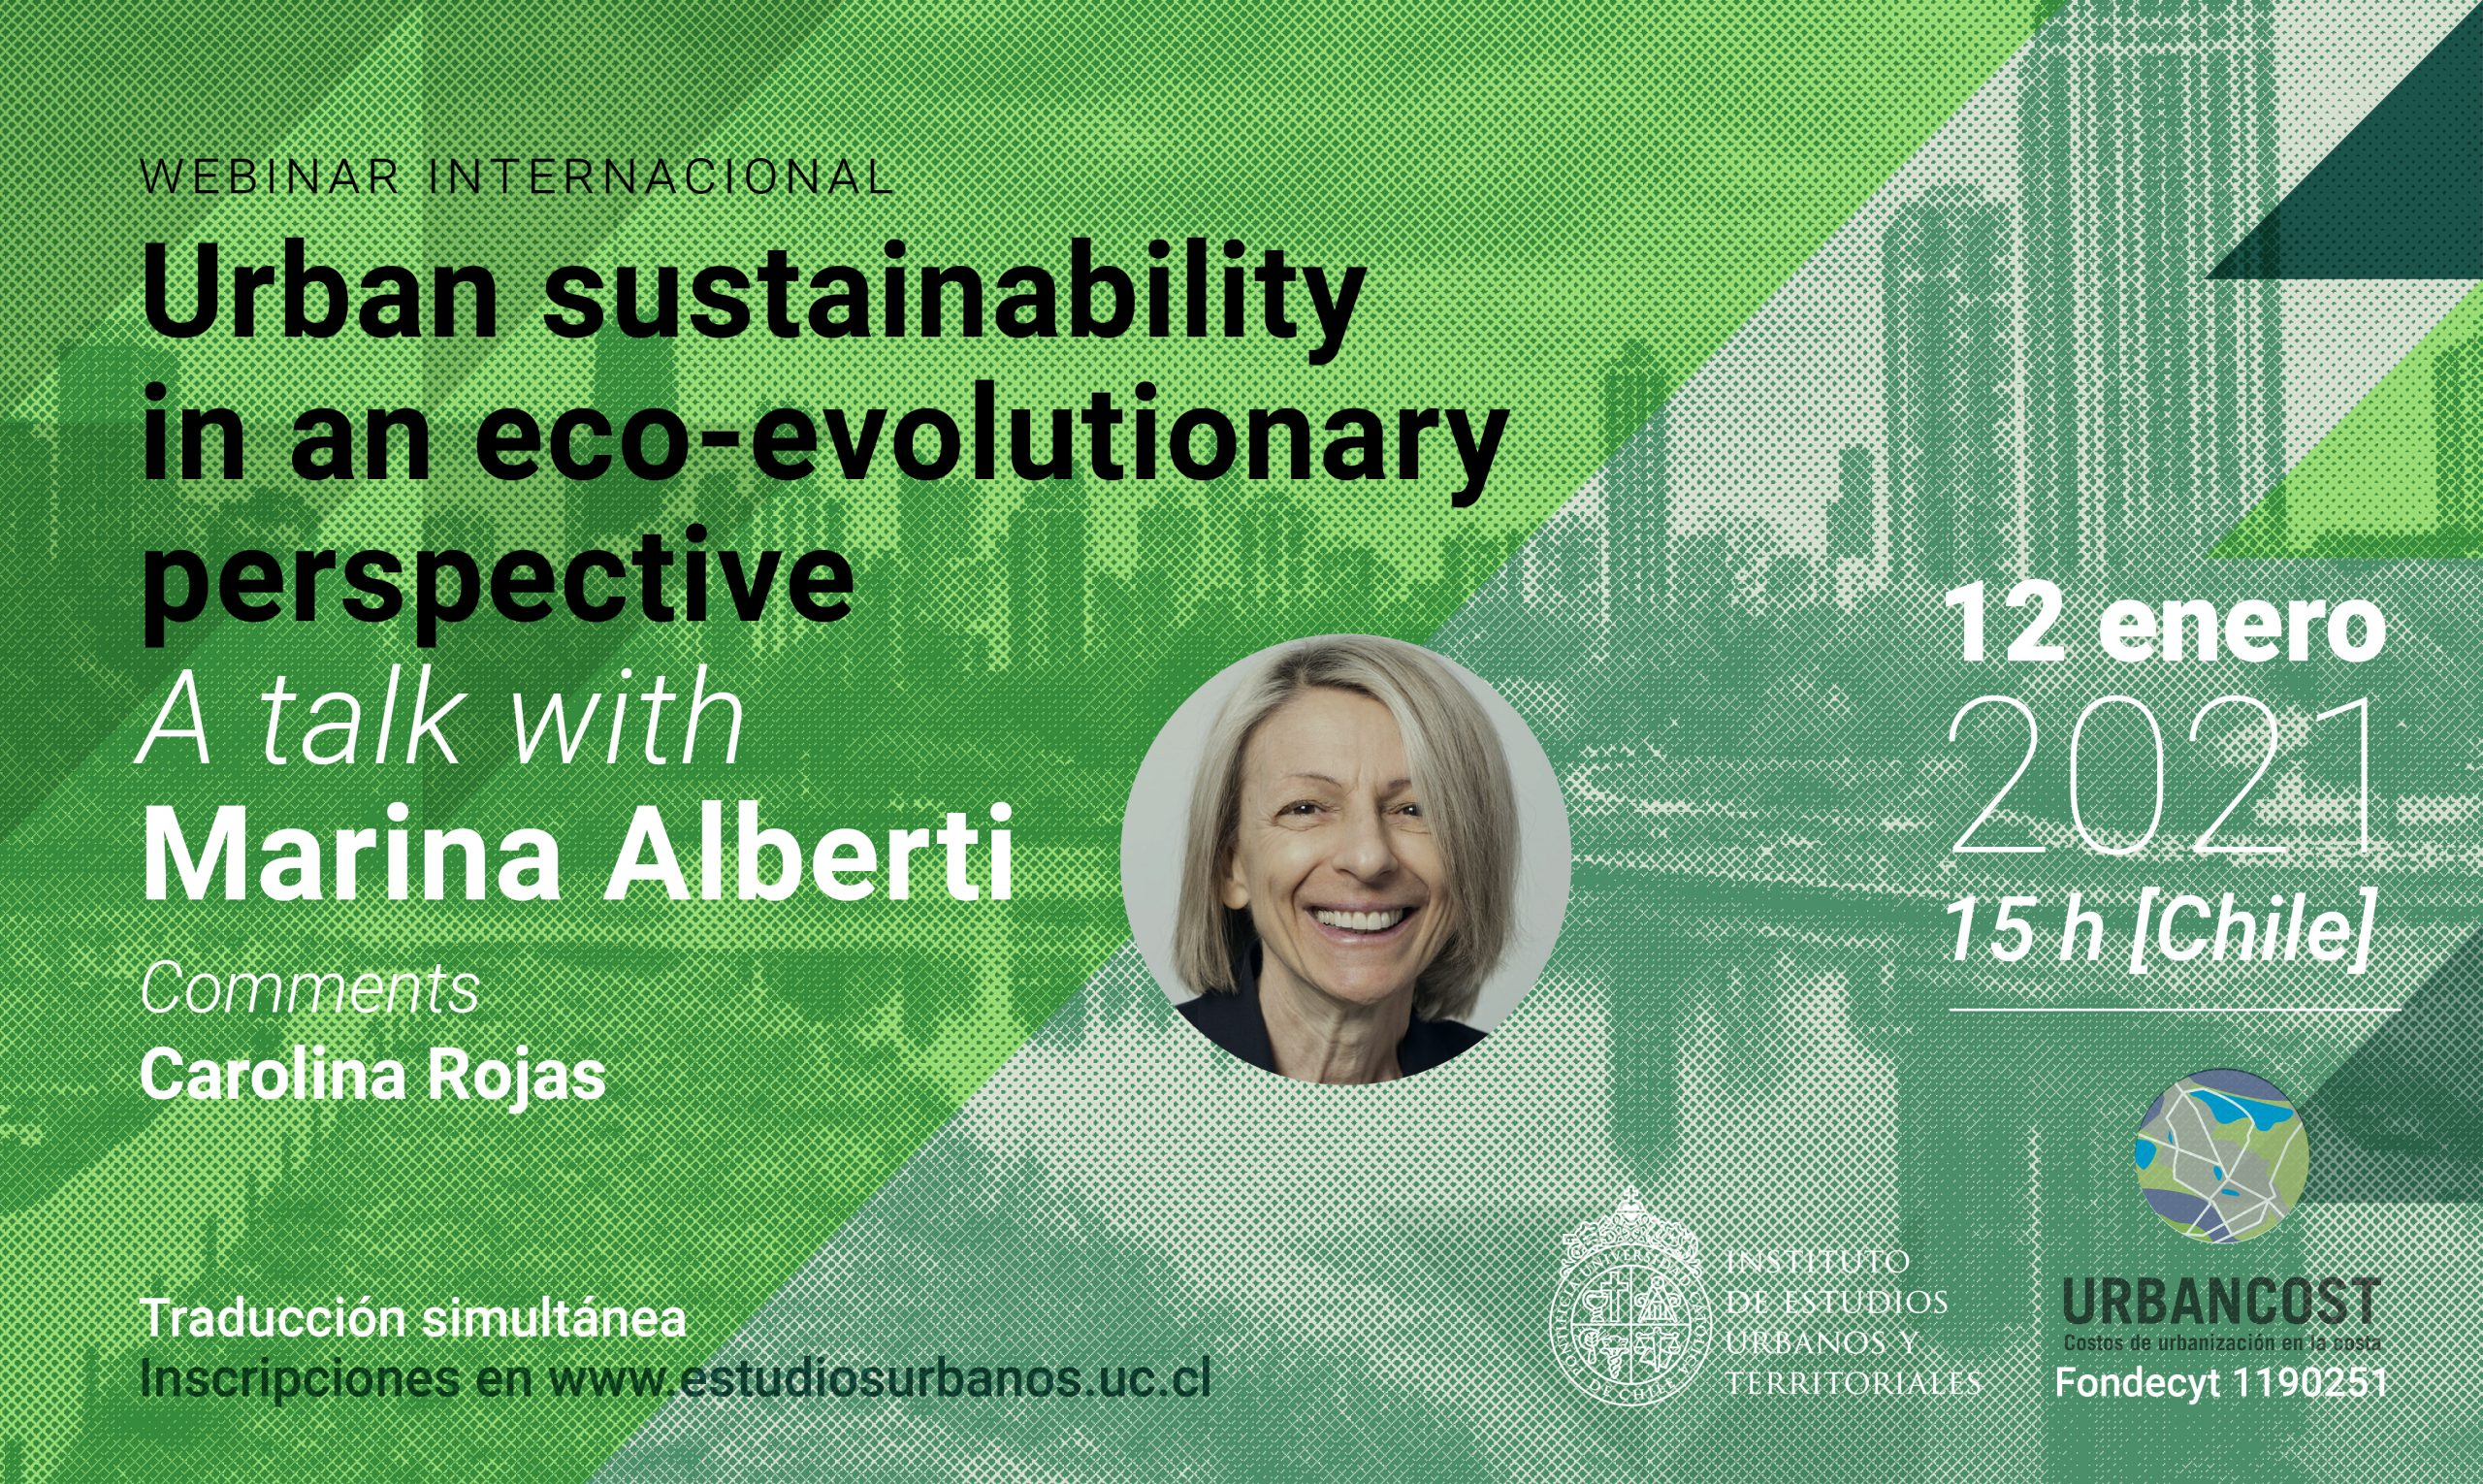 Urban sustainability in an eco-evolutionary perspective, a talk with Marina Alberti